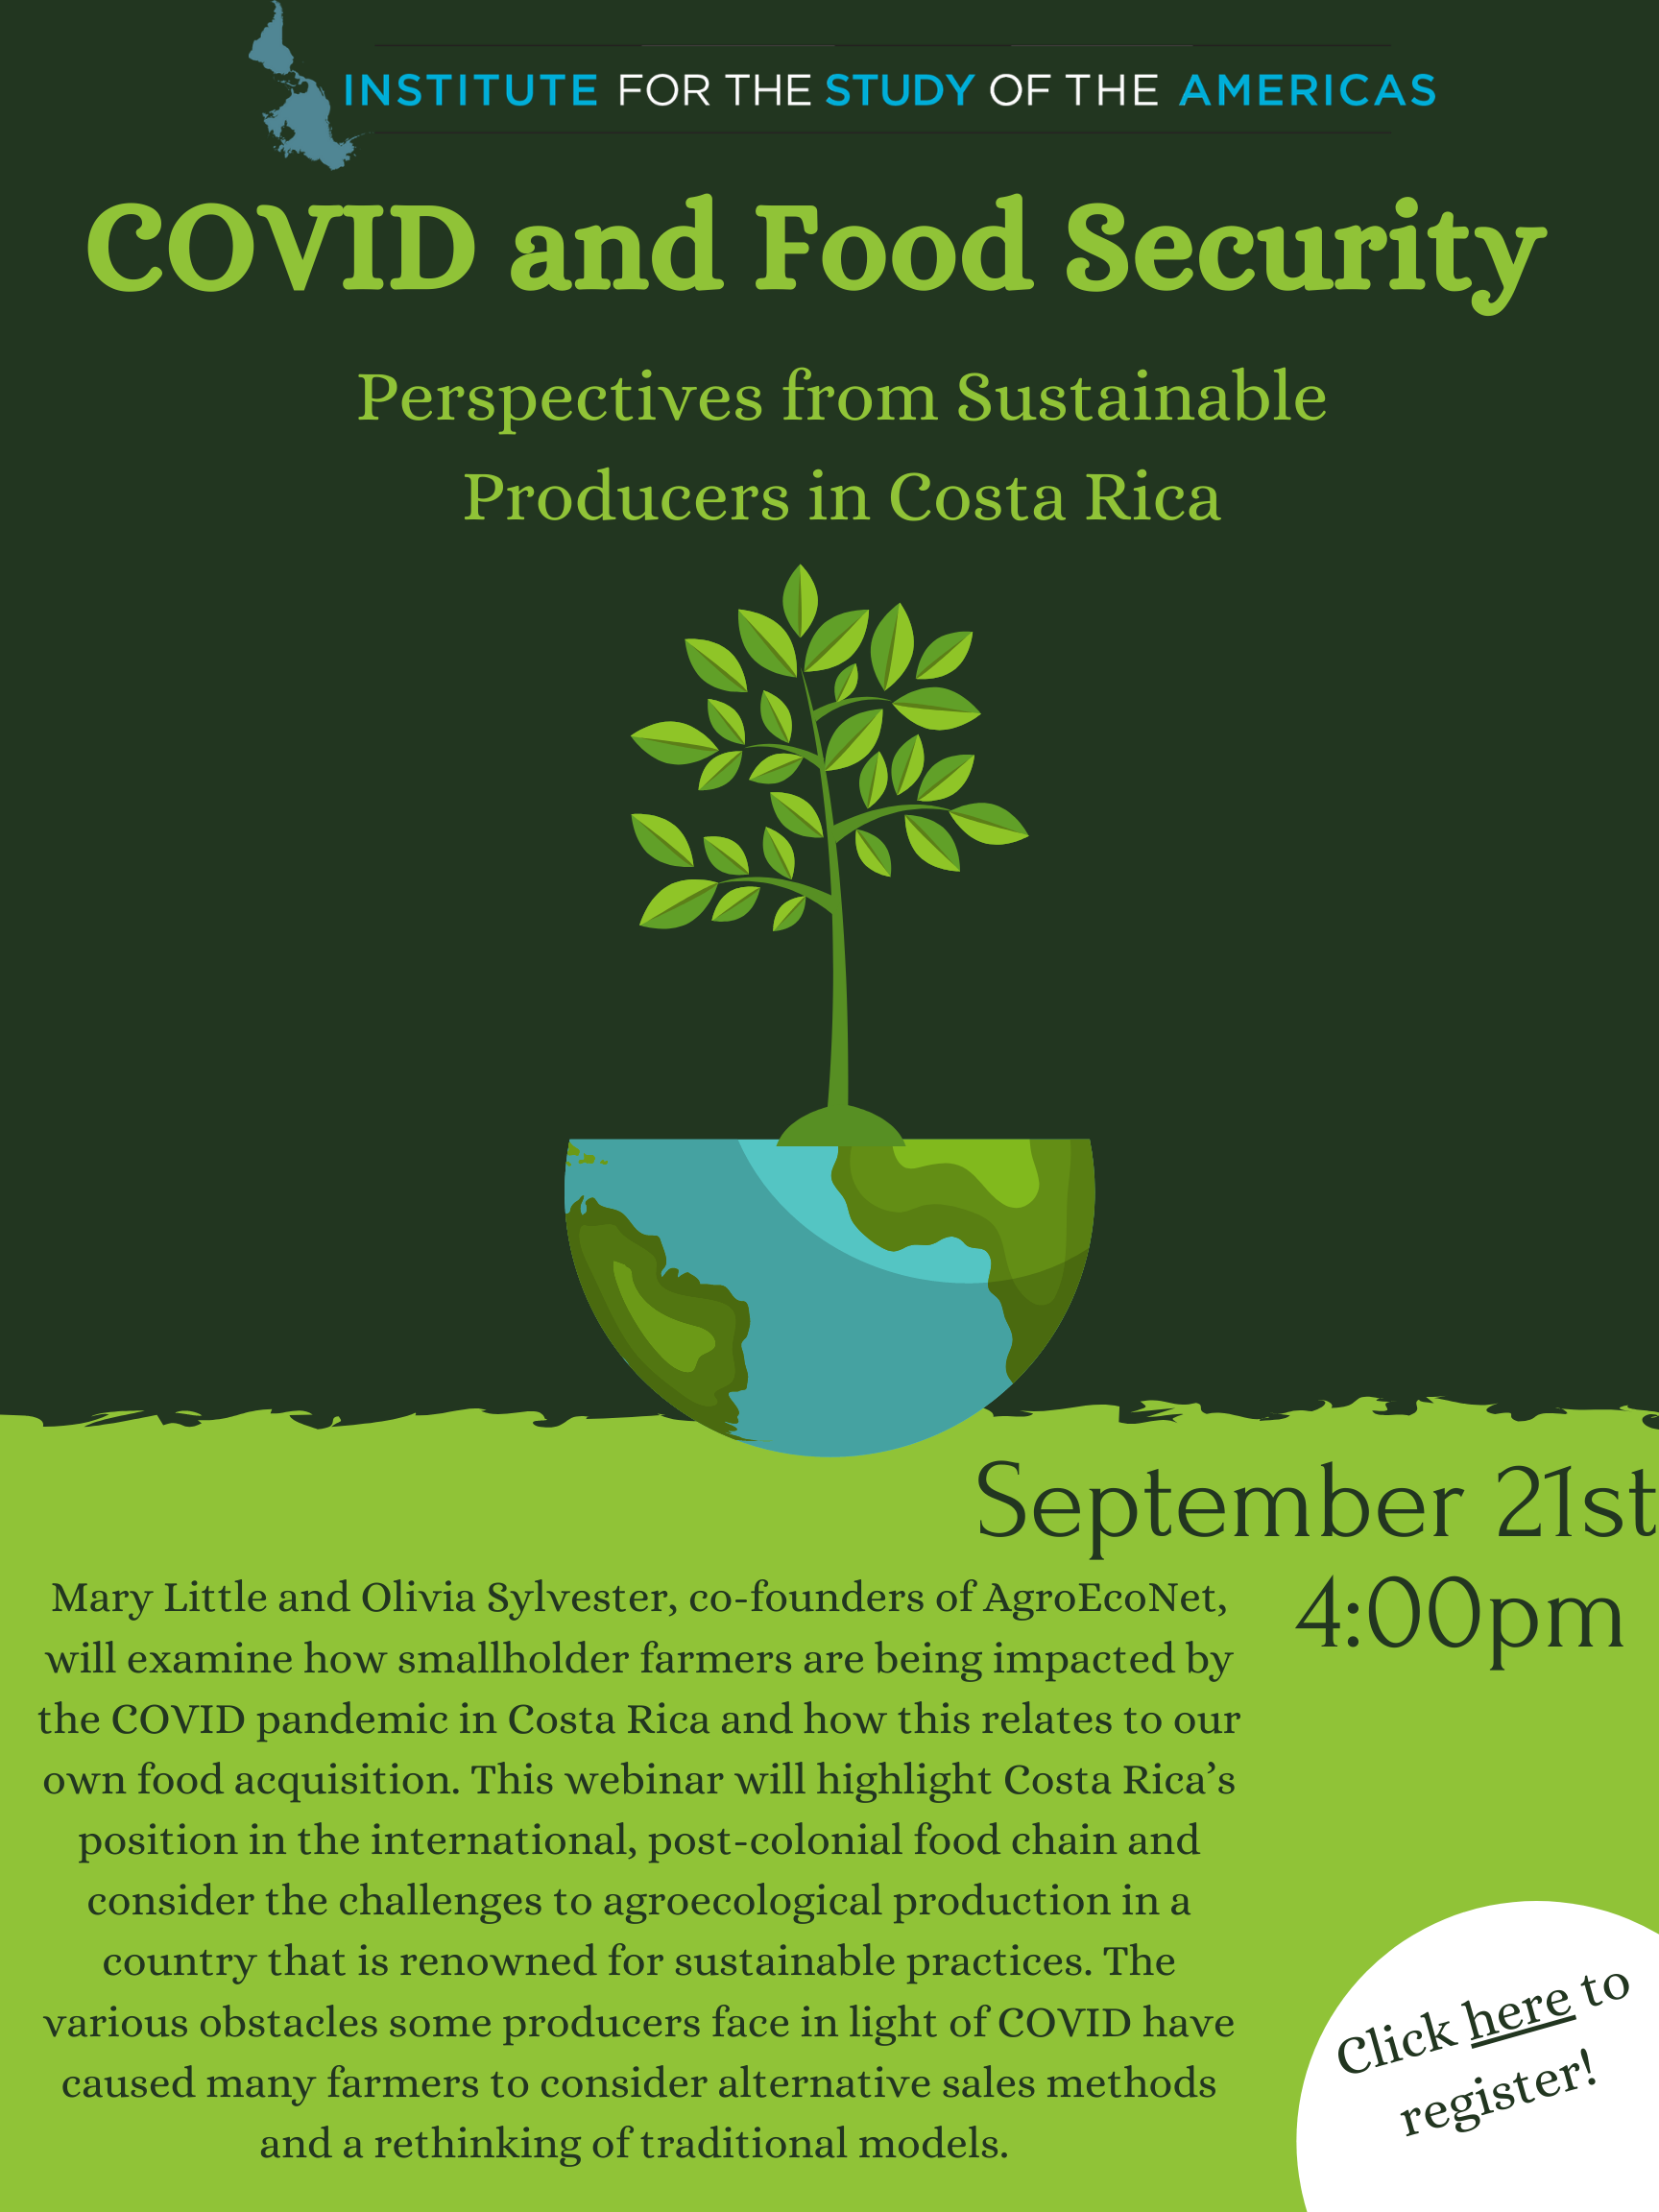 """COVID and Food Security: Perspectives from <br />Sustainable Producers in Costa Rica"""" class=""""img-responsive""""><br /> <button type="""